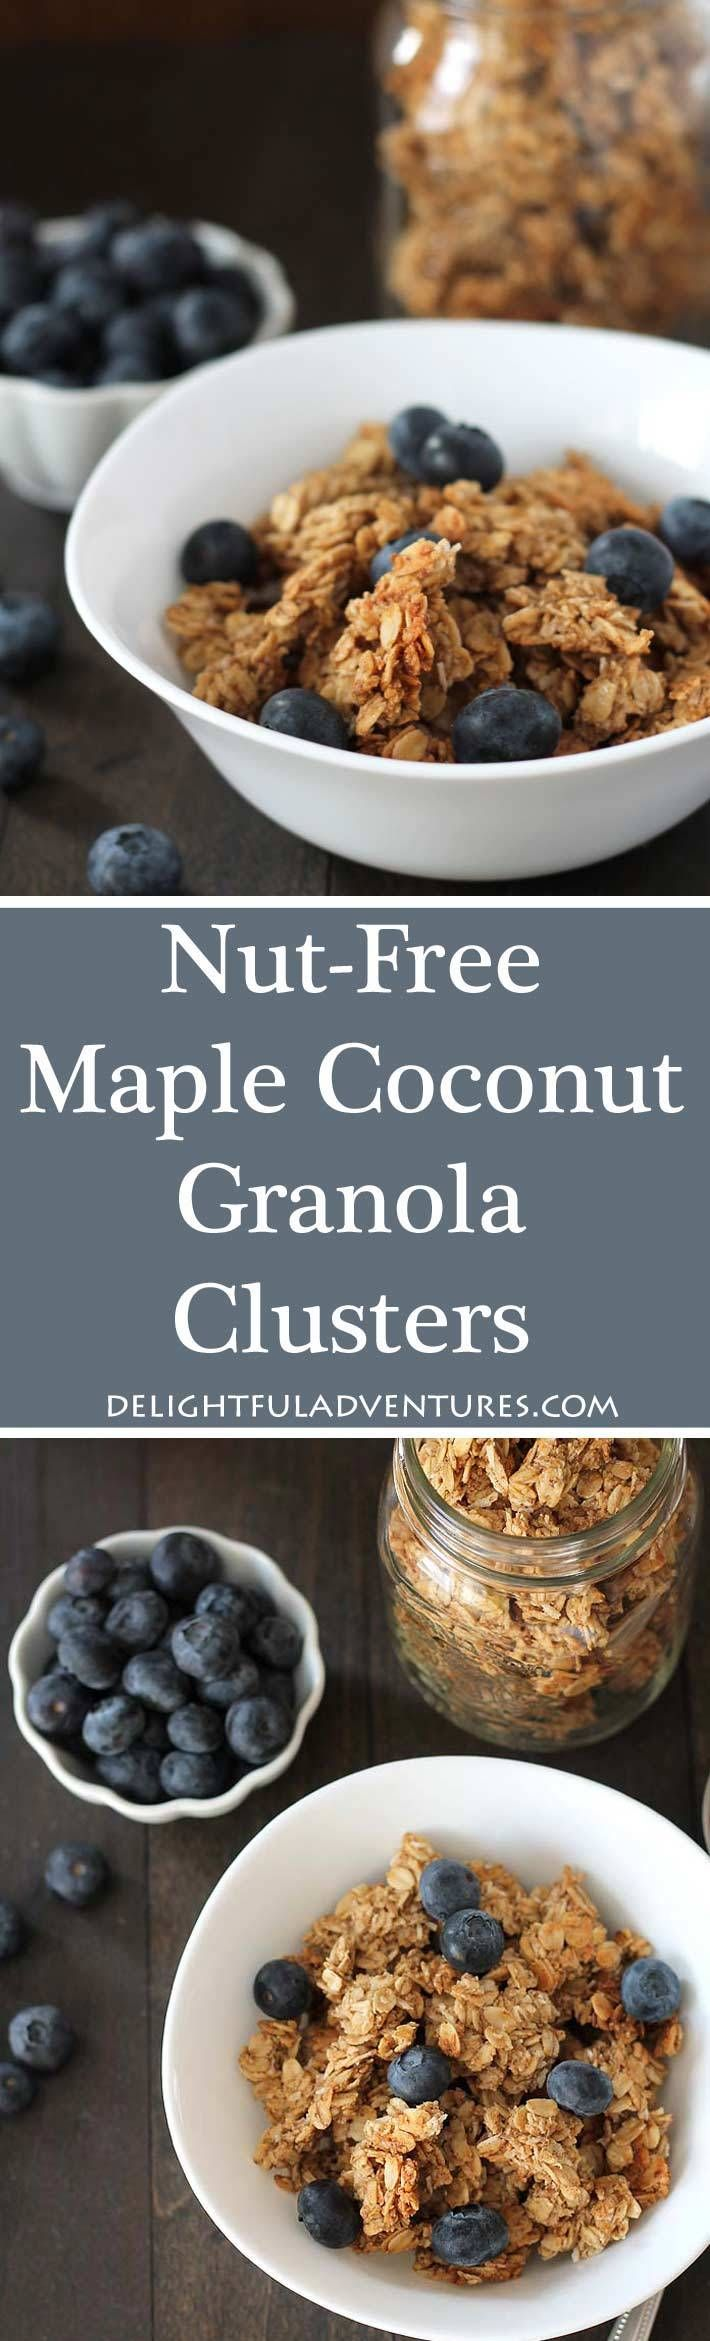 1000+ images about Granola Bars and homemade Granola on Pinterest